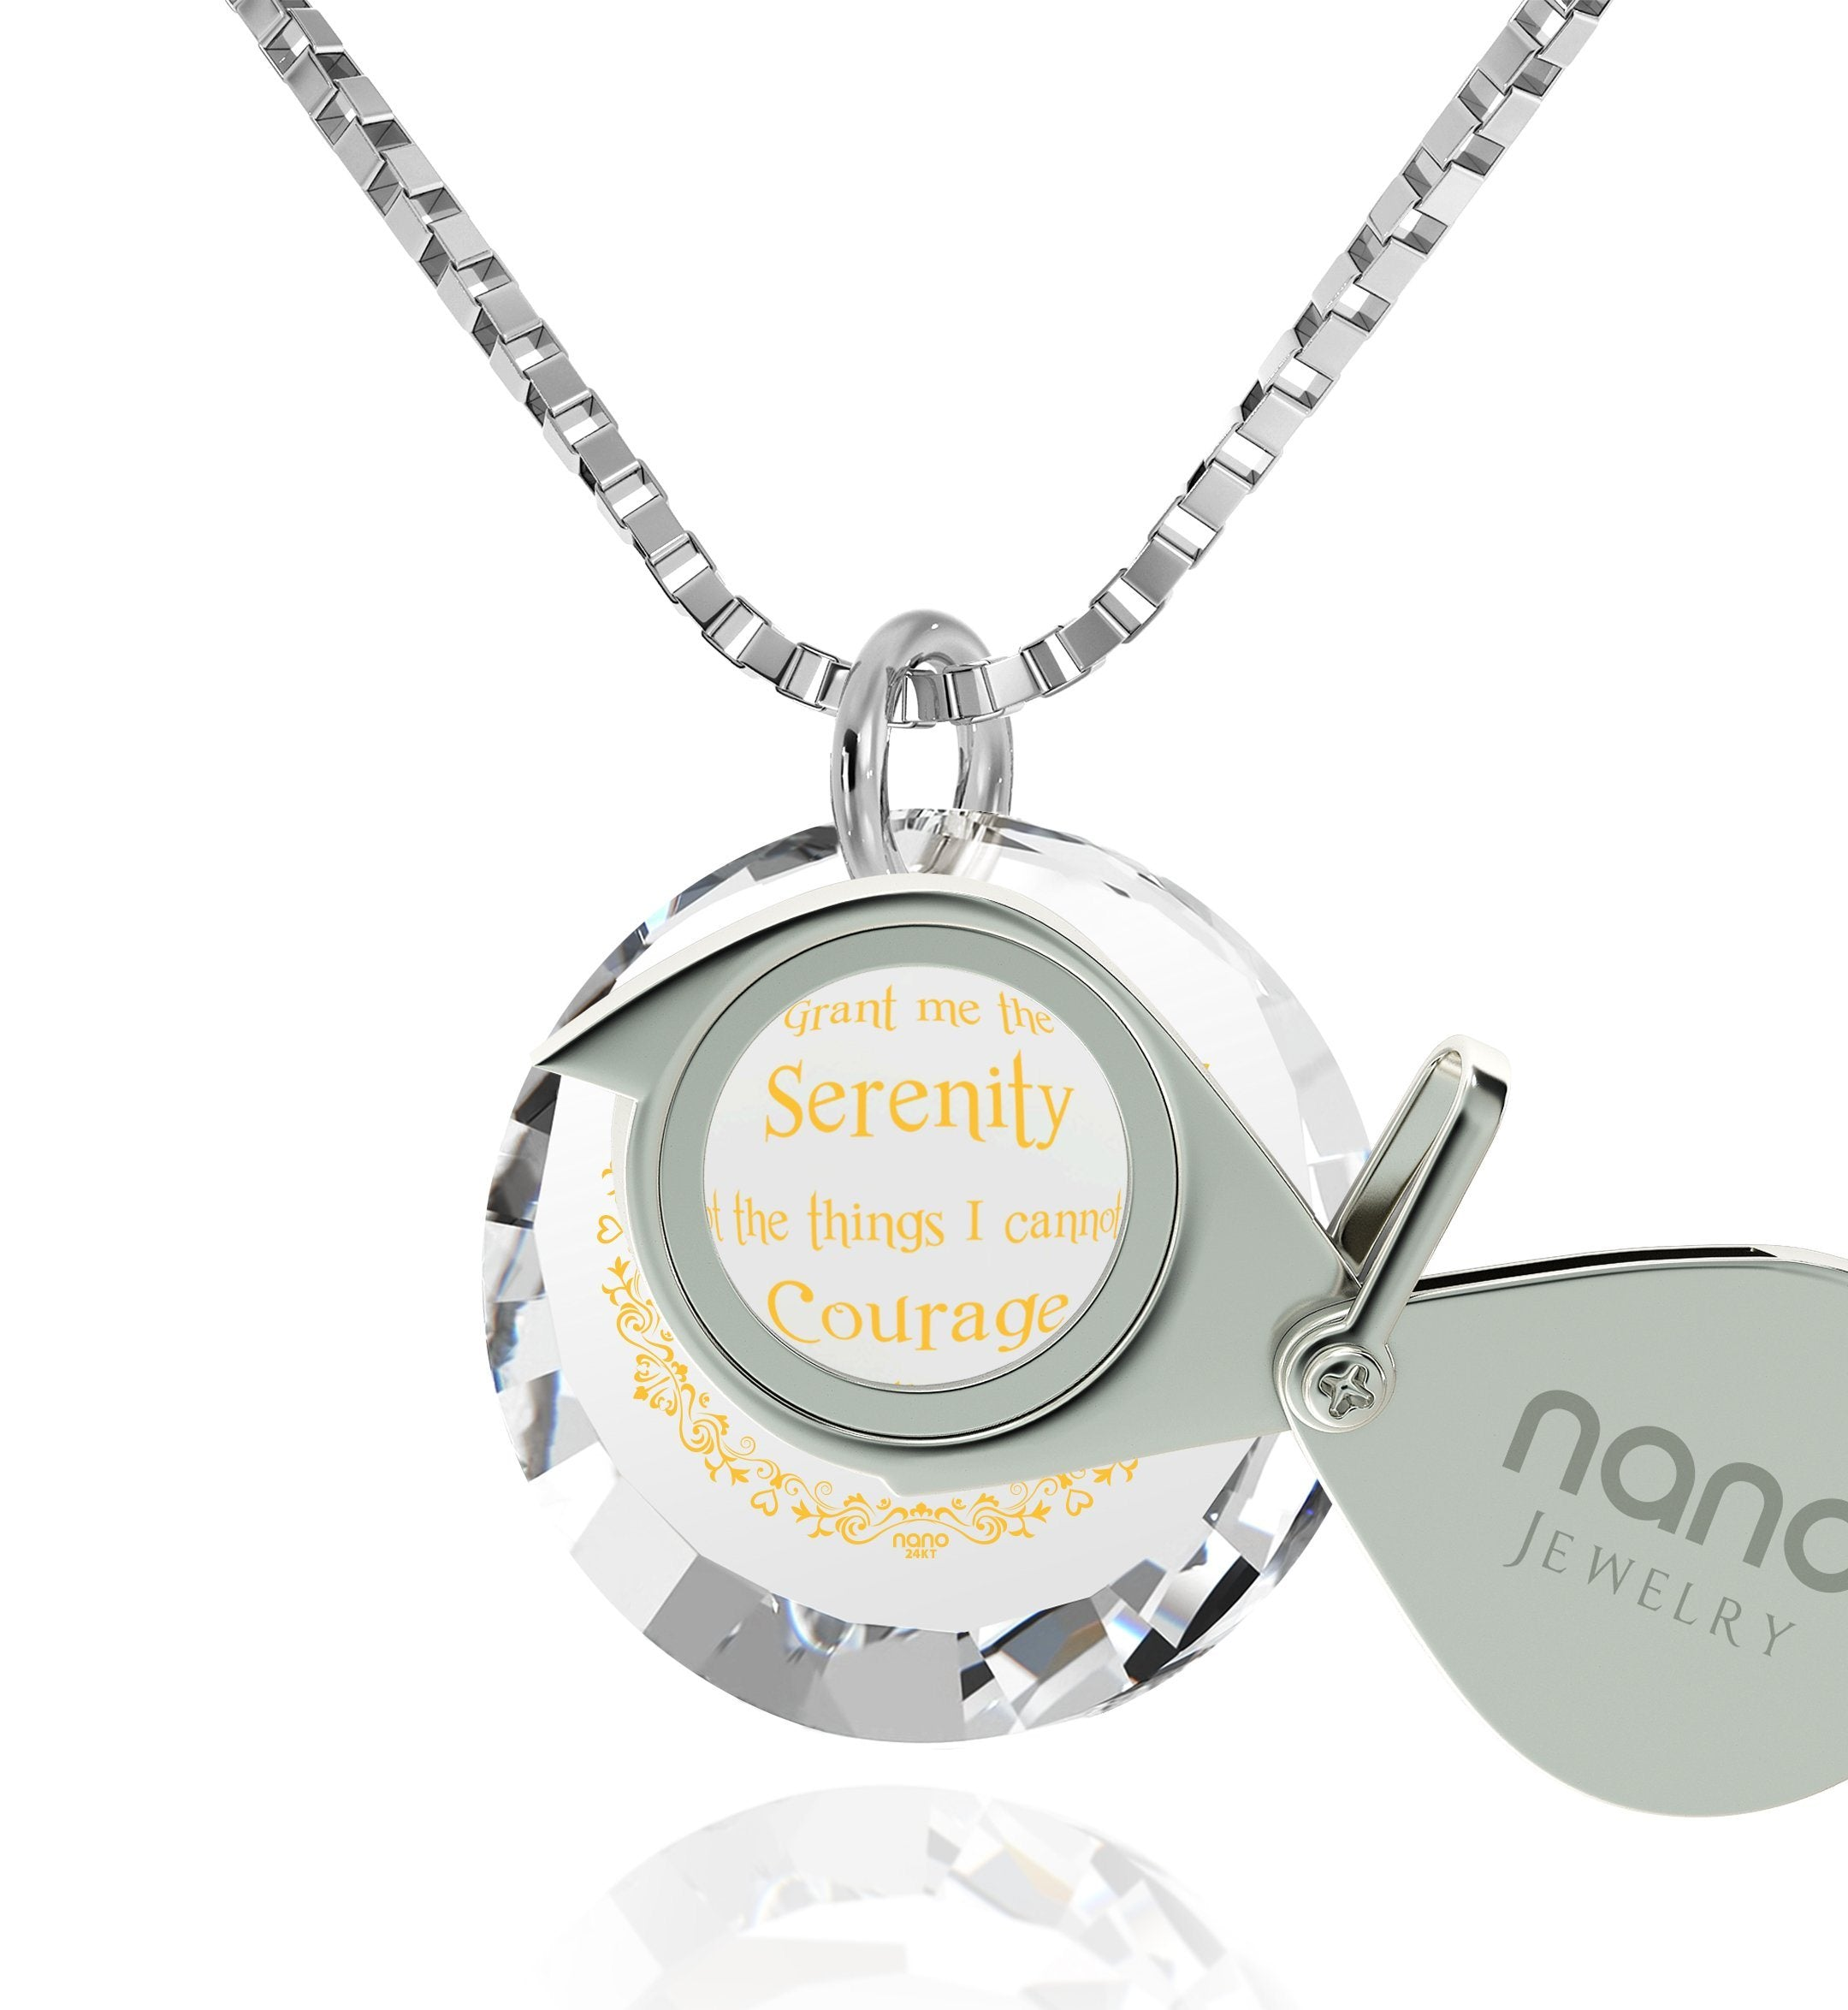 pin pendant pearls cross steel jewelry necklace beads high serenity prayer stainless by polished